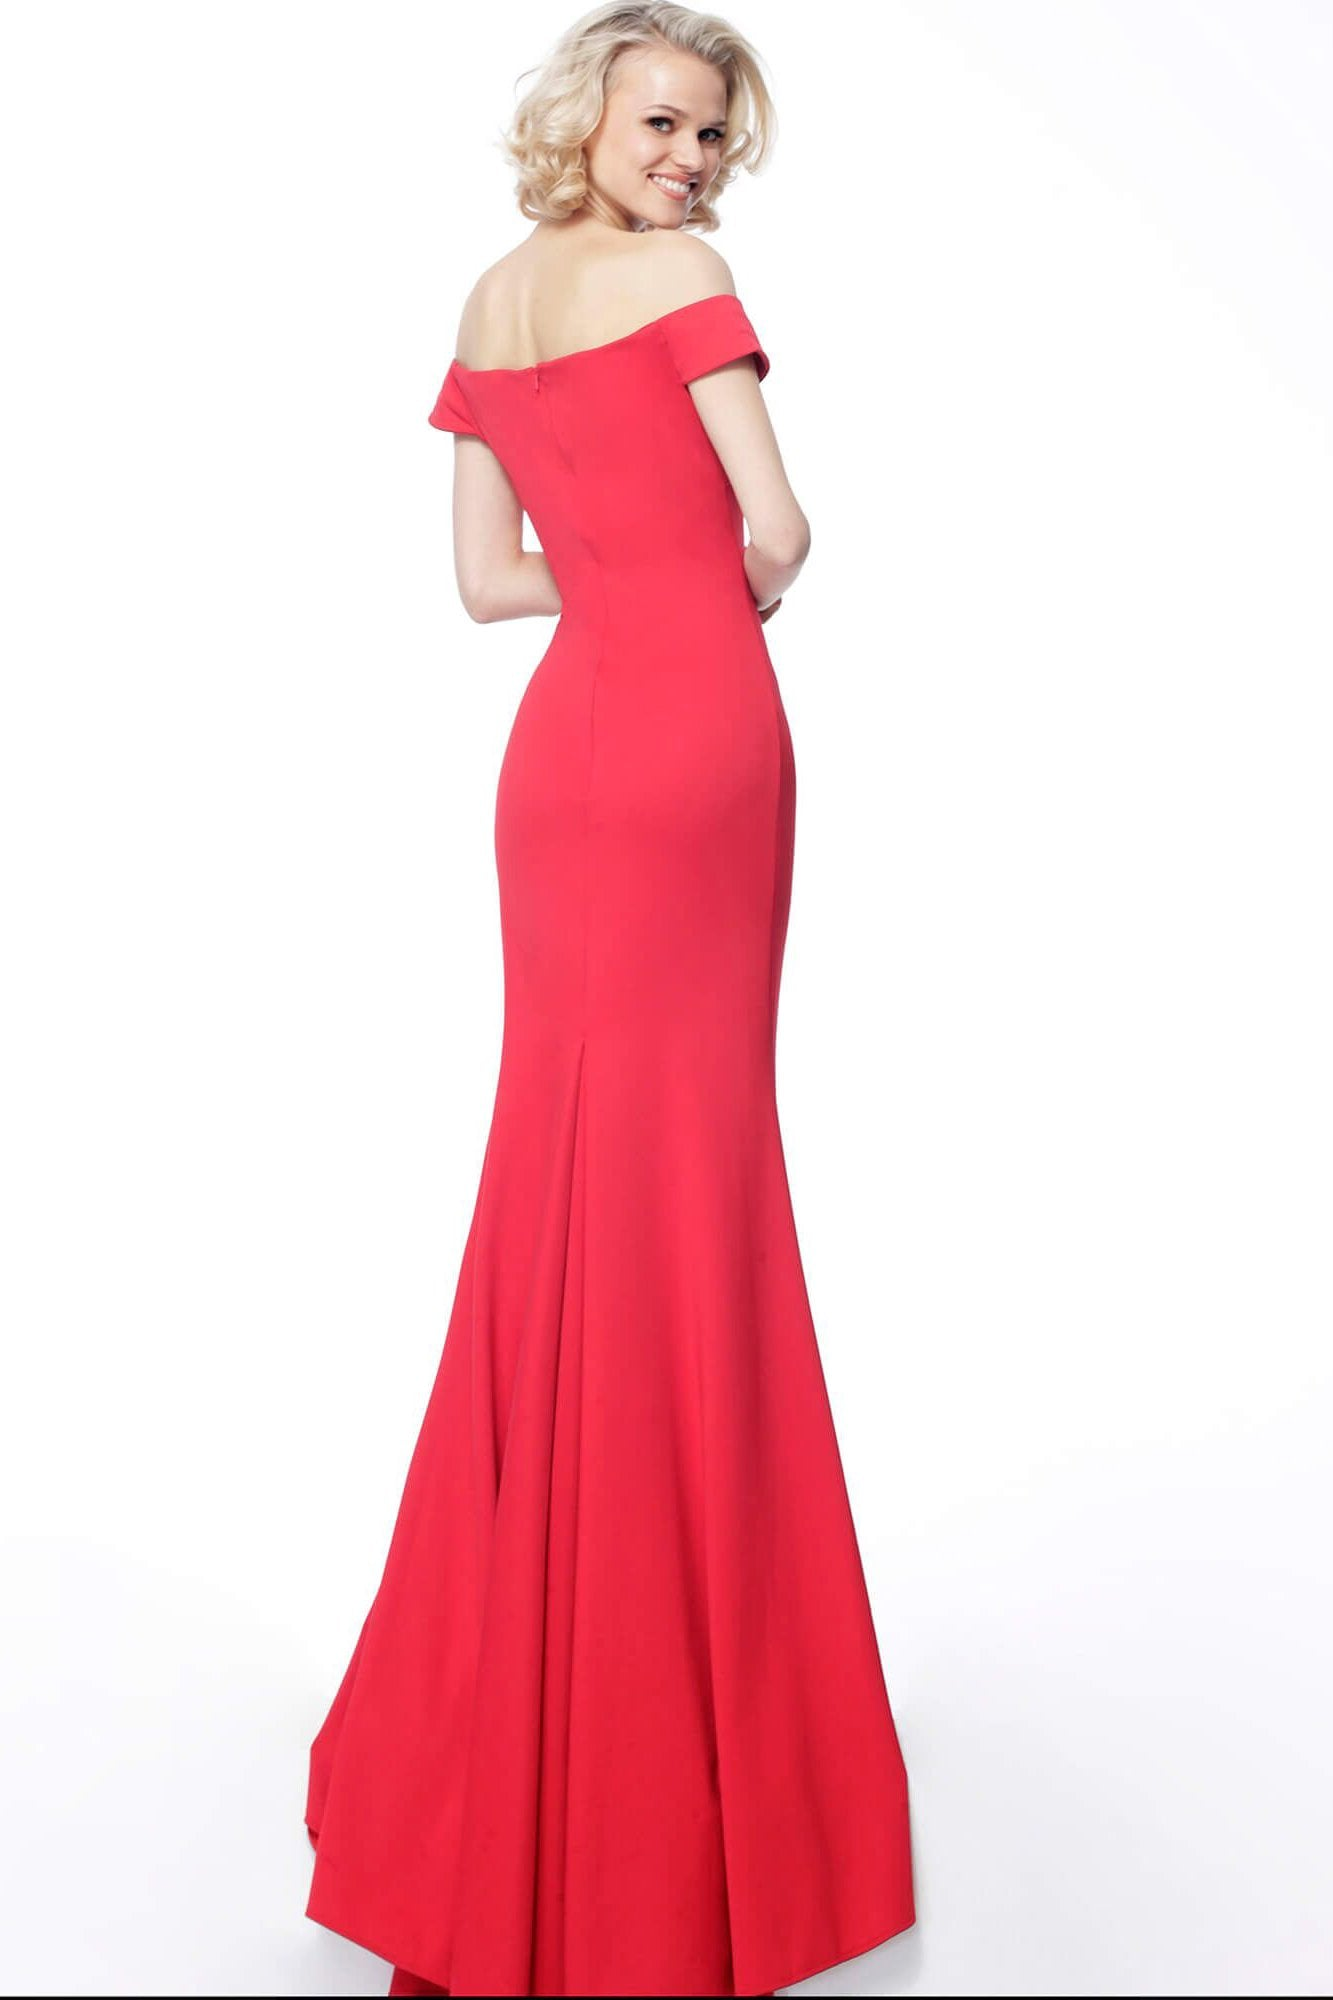 Jovani - 68768 Plunging Off-shoulder Trumpet Dress In Red